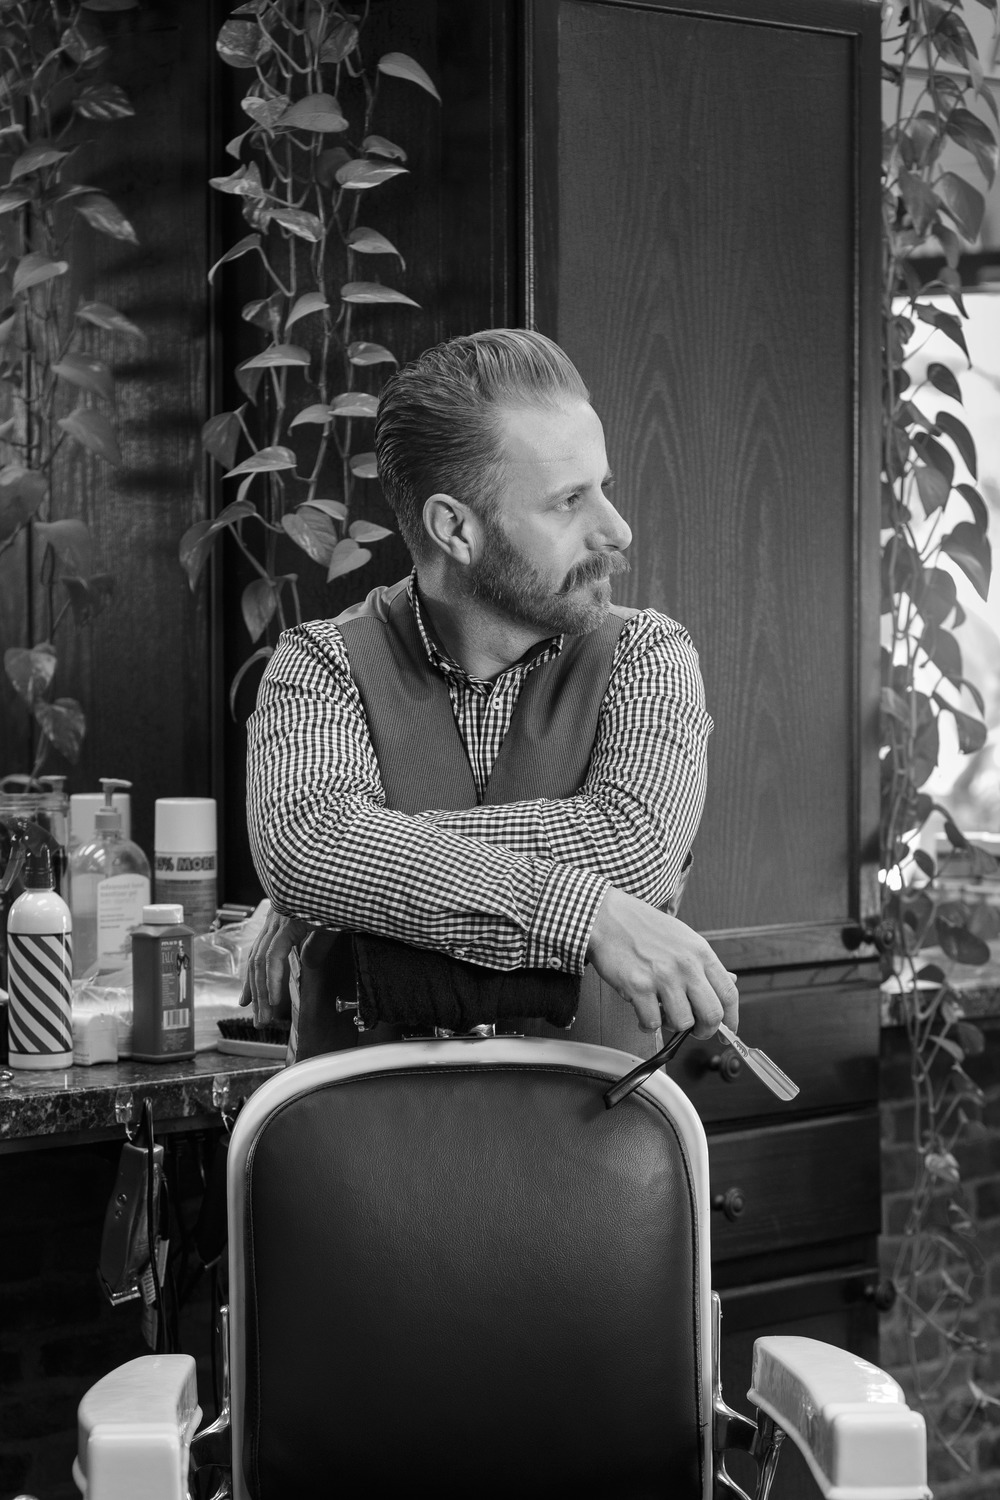 Clean Cut Barber Portrait Black and White